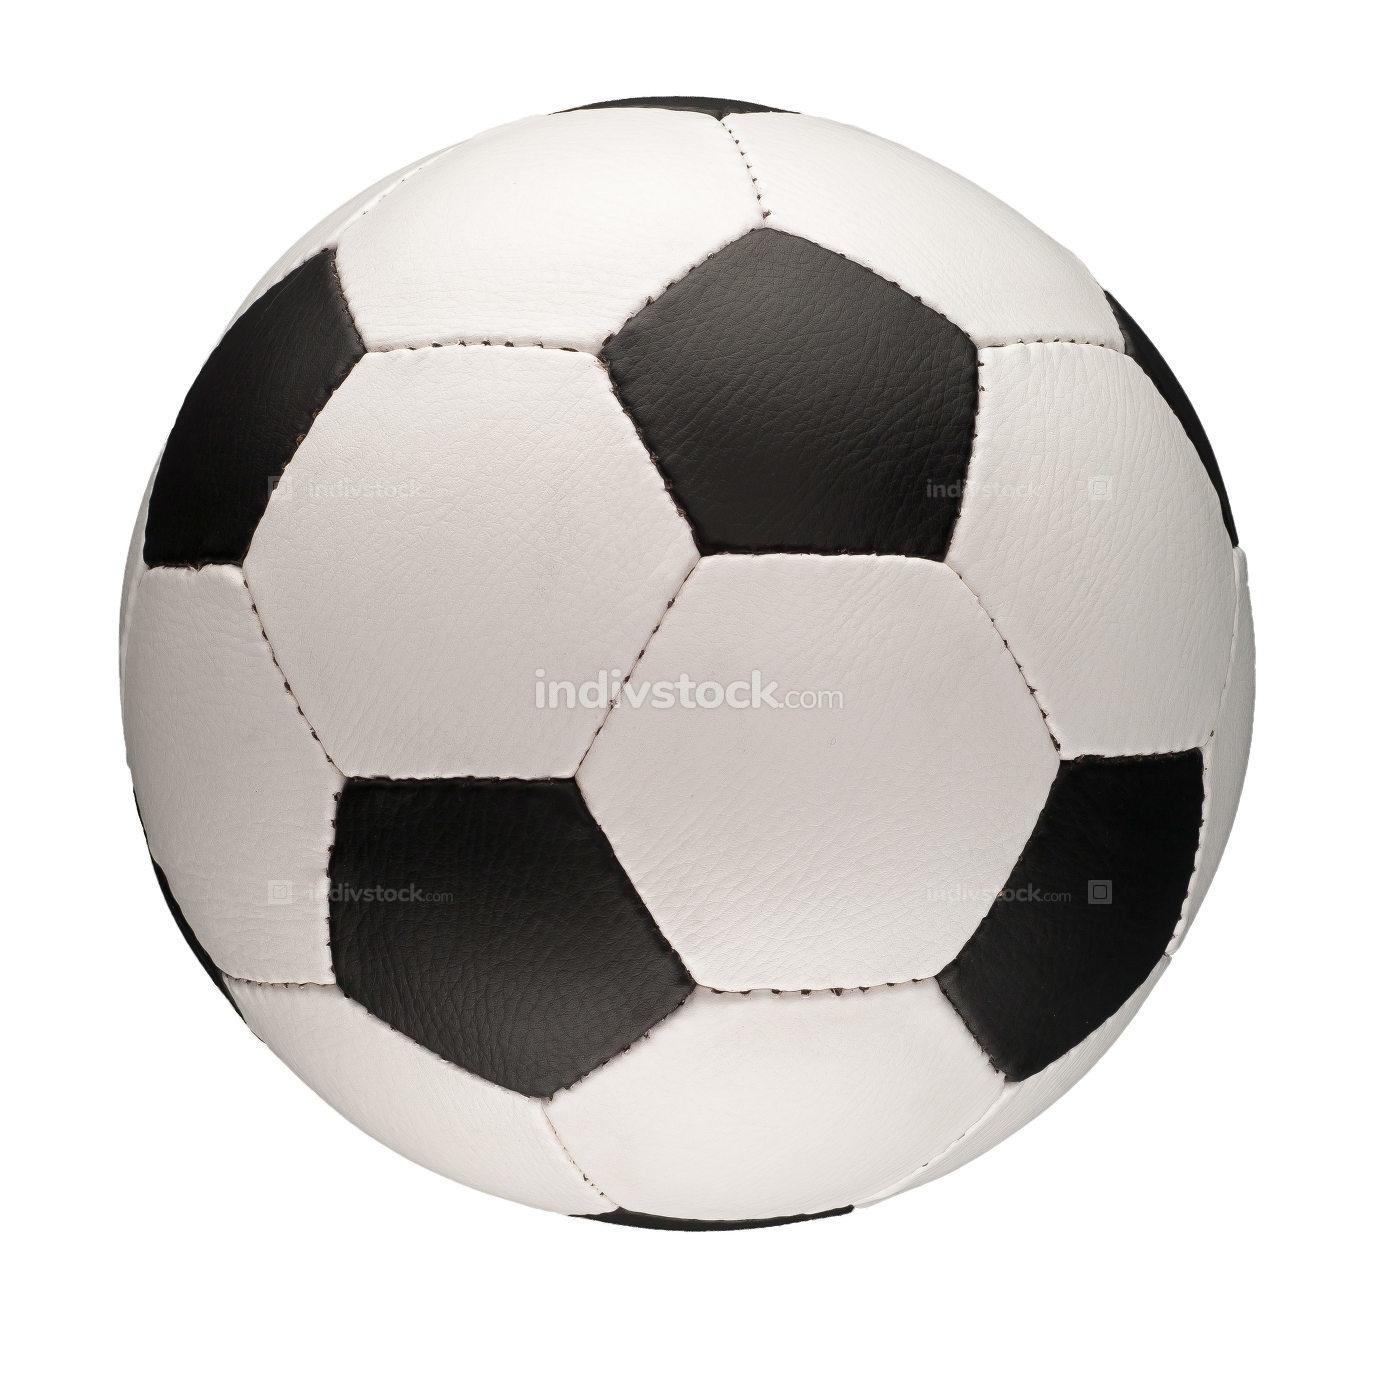 Football (Soccer) Ball